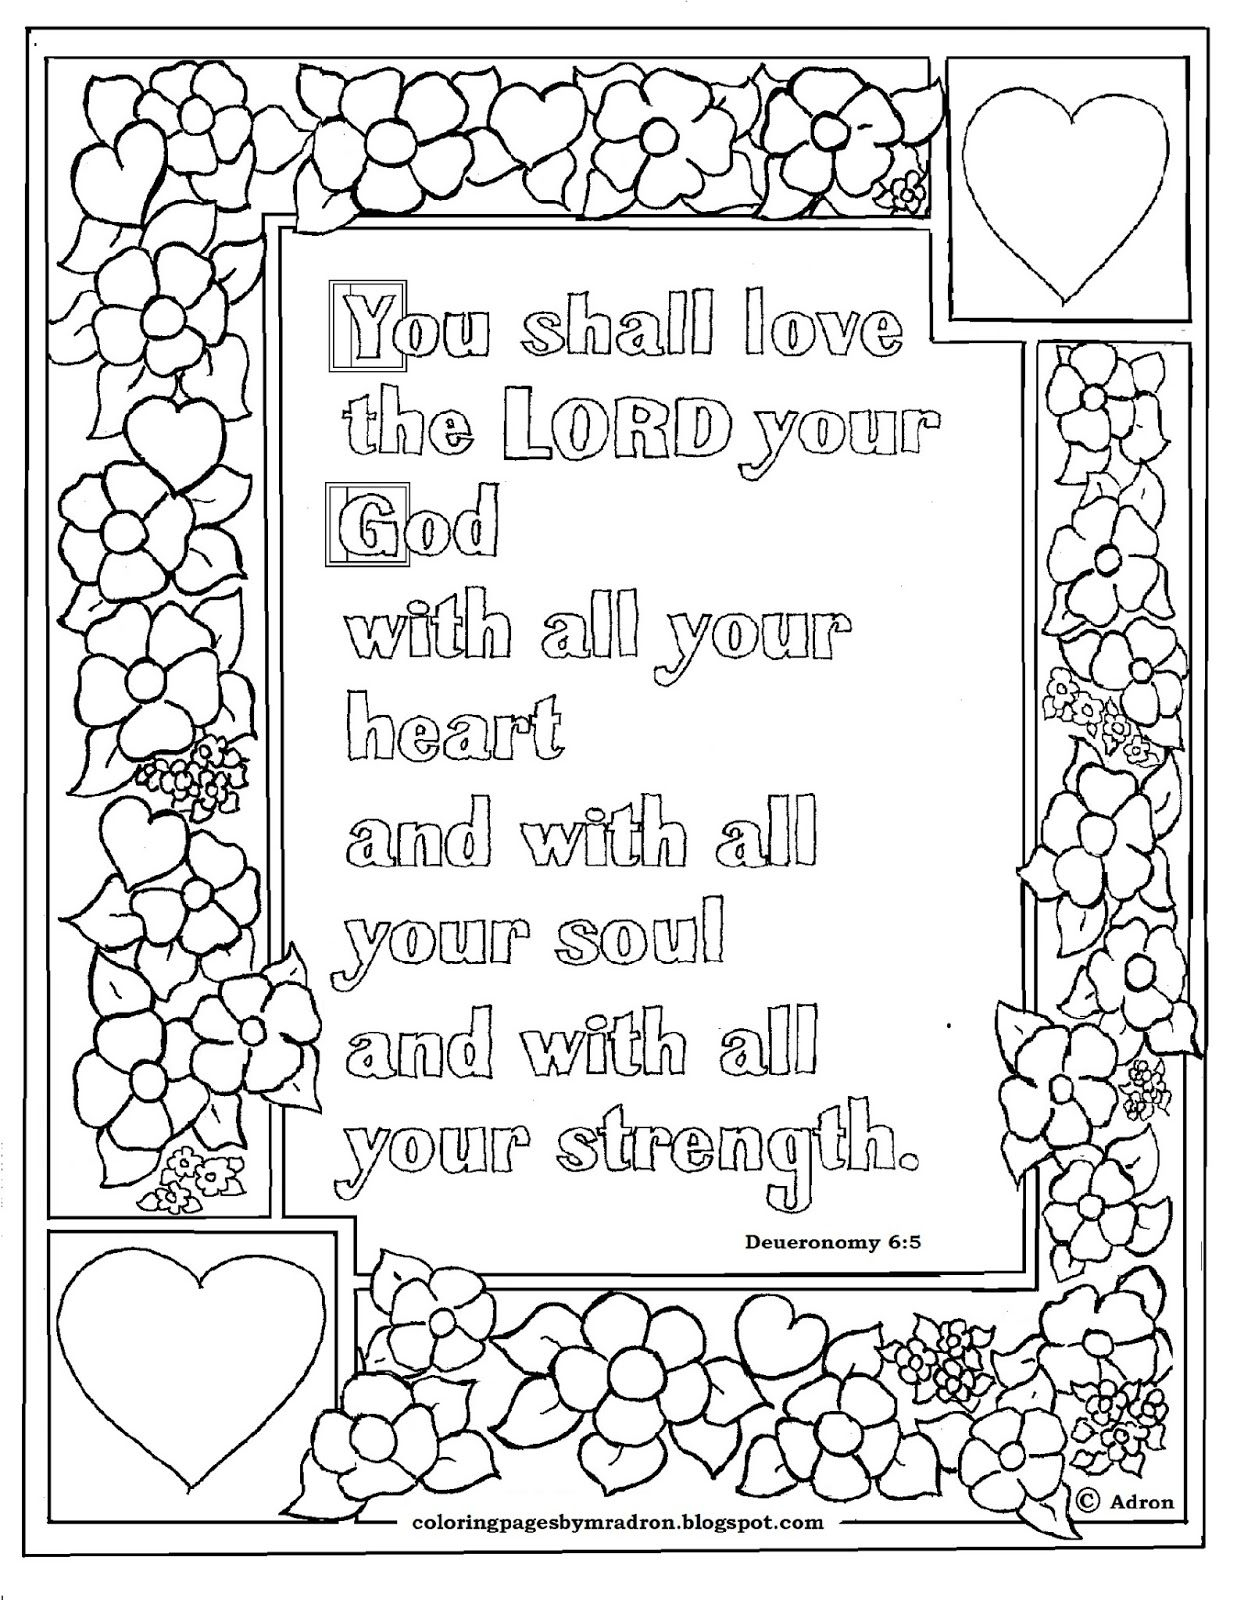 bible story coloring pages preschoolers Download-Deuteronomy 6 5 Bible verse to print and color This is a free printable Bible verse coloring page it is perfect for children and adults t 5-c